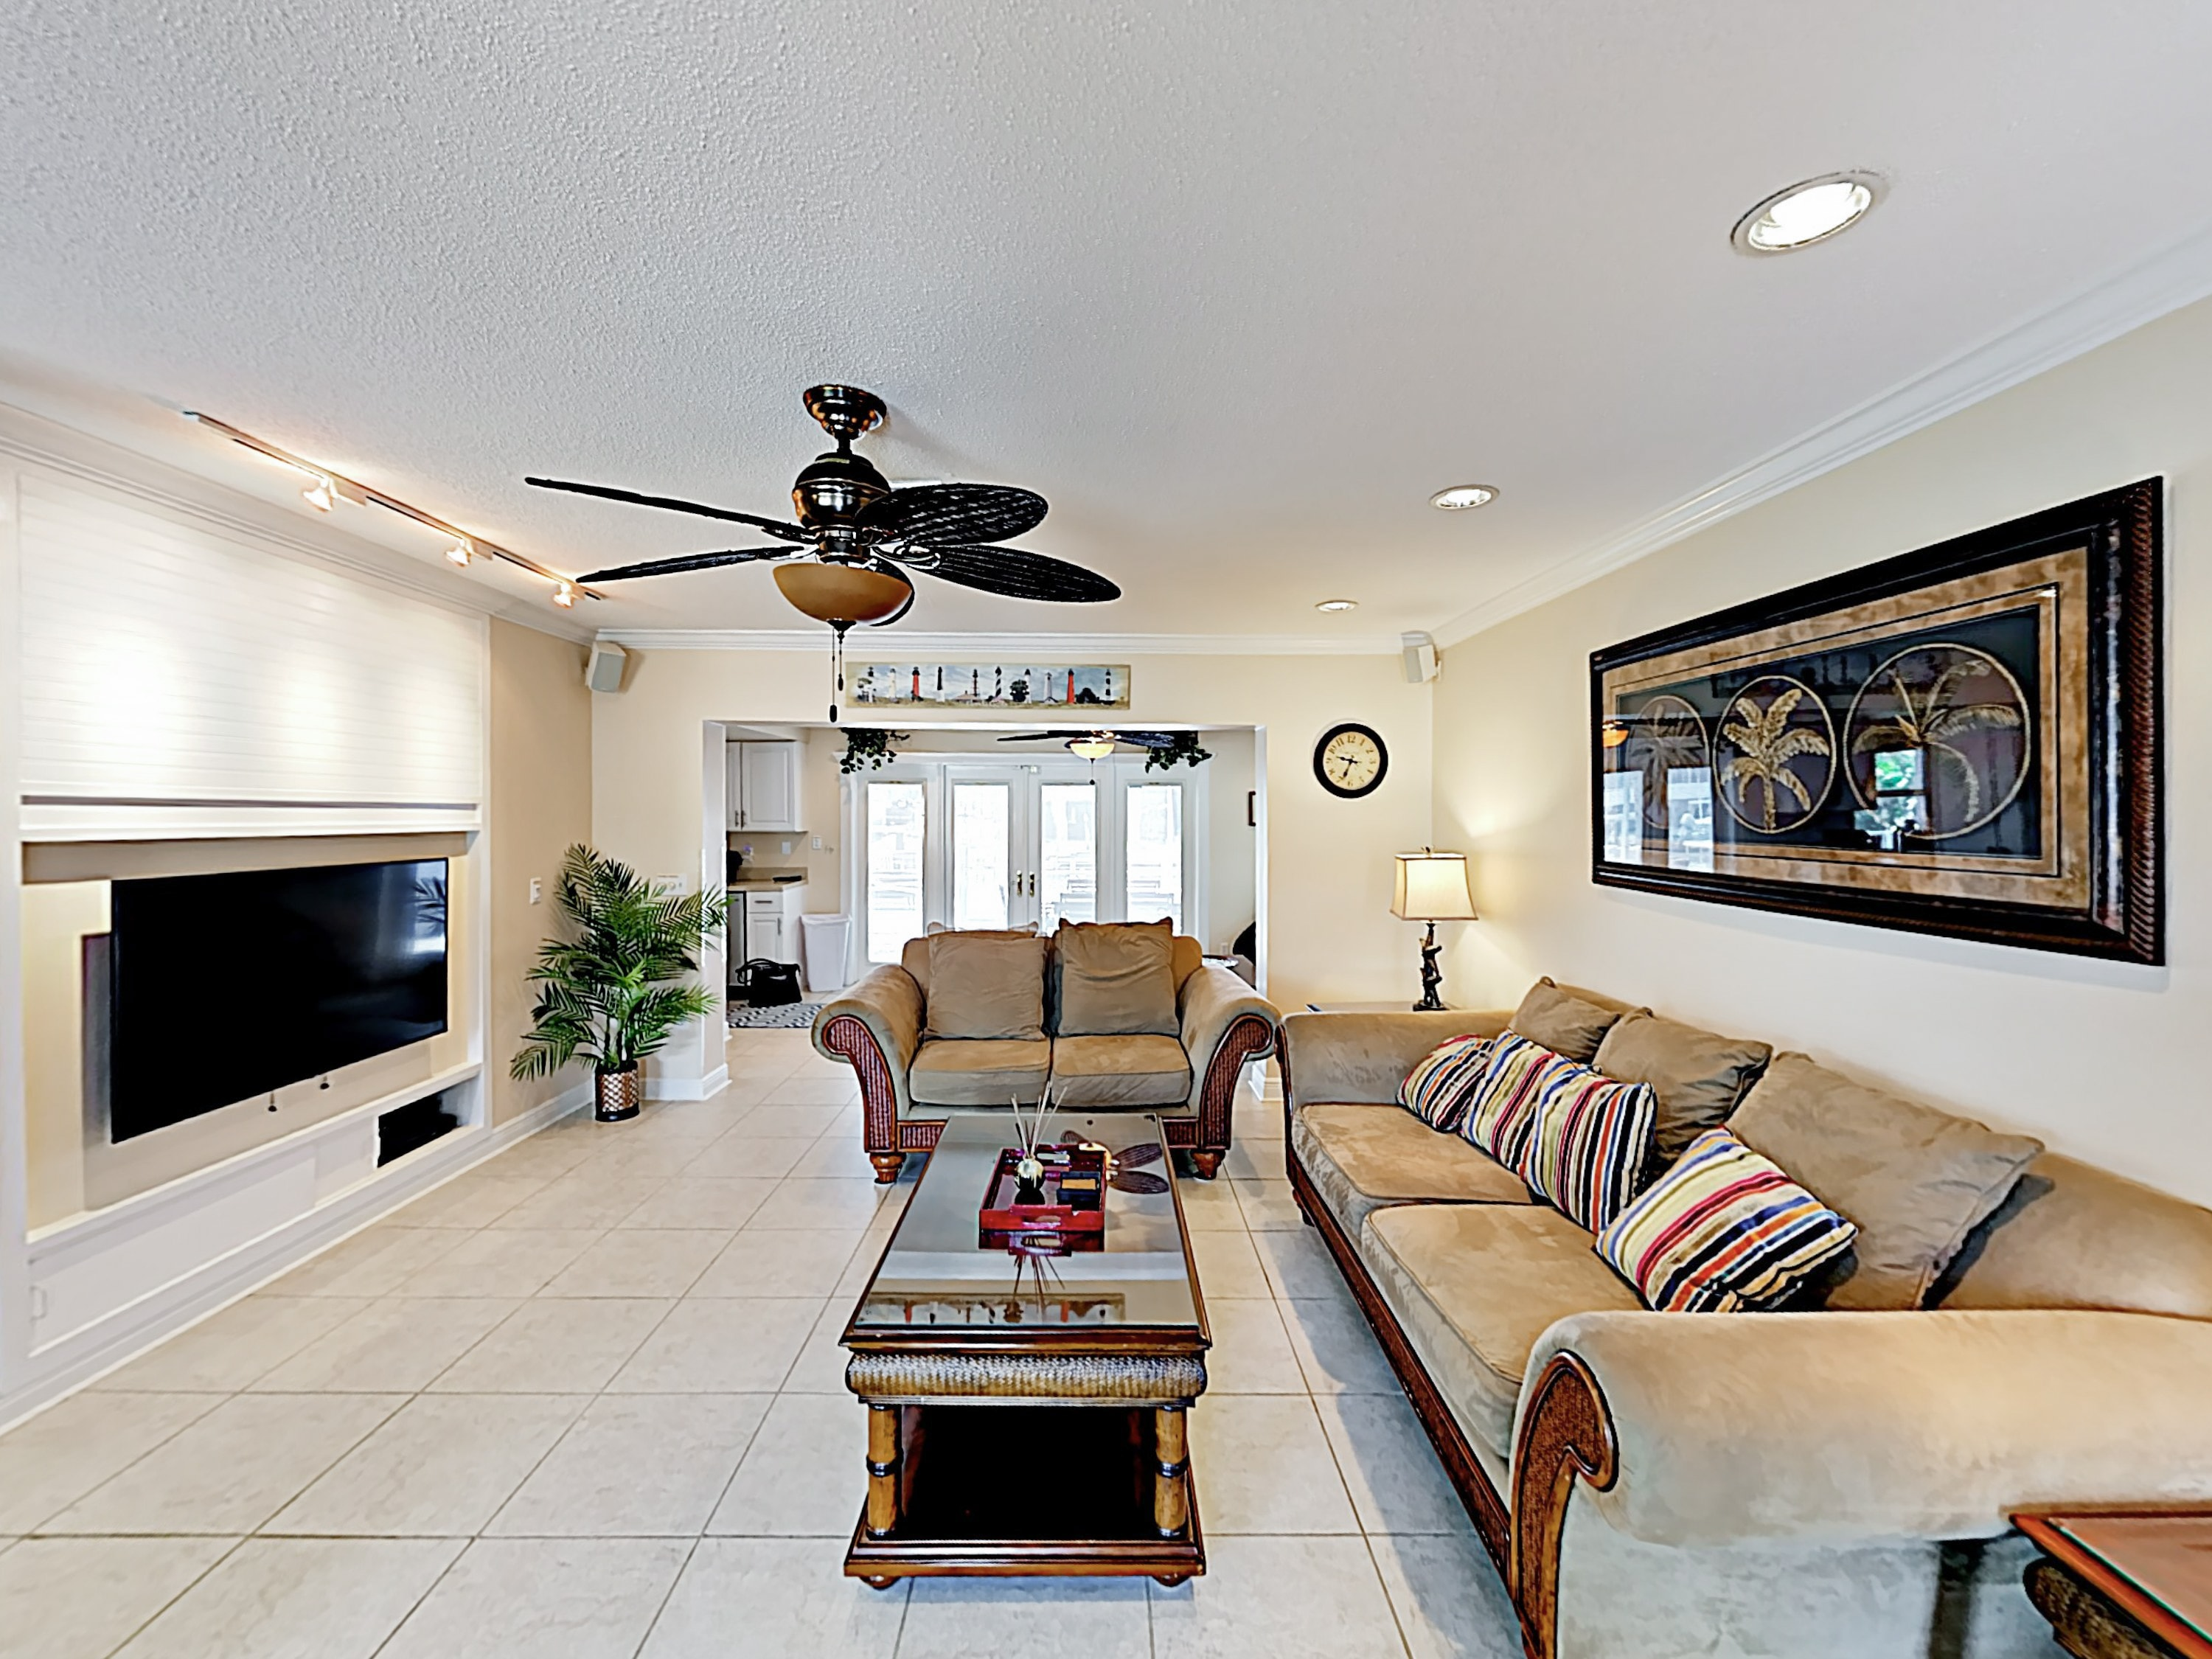 The living area is furnished with ample comfortable seating.